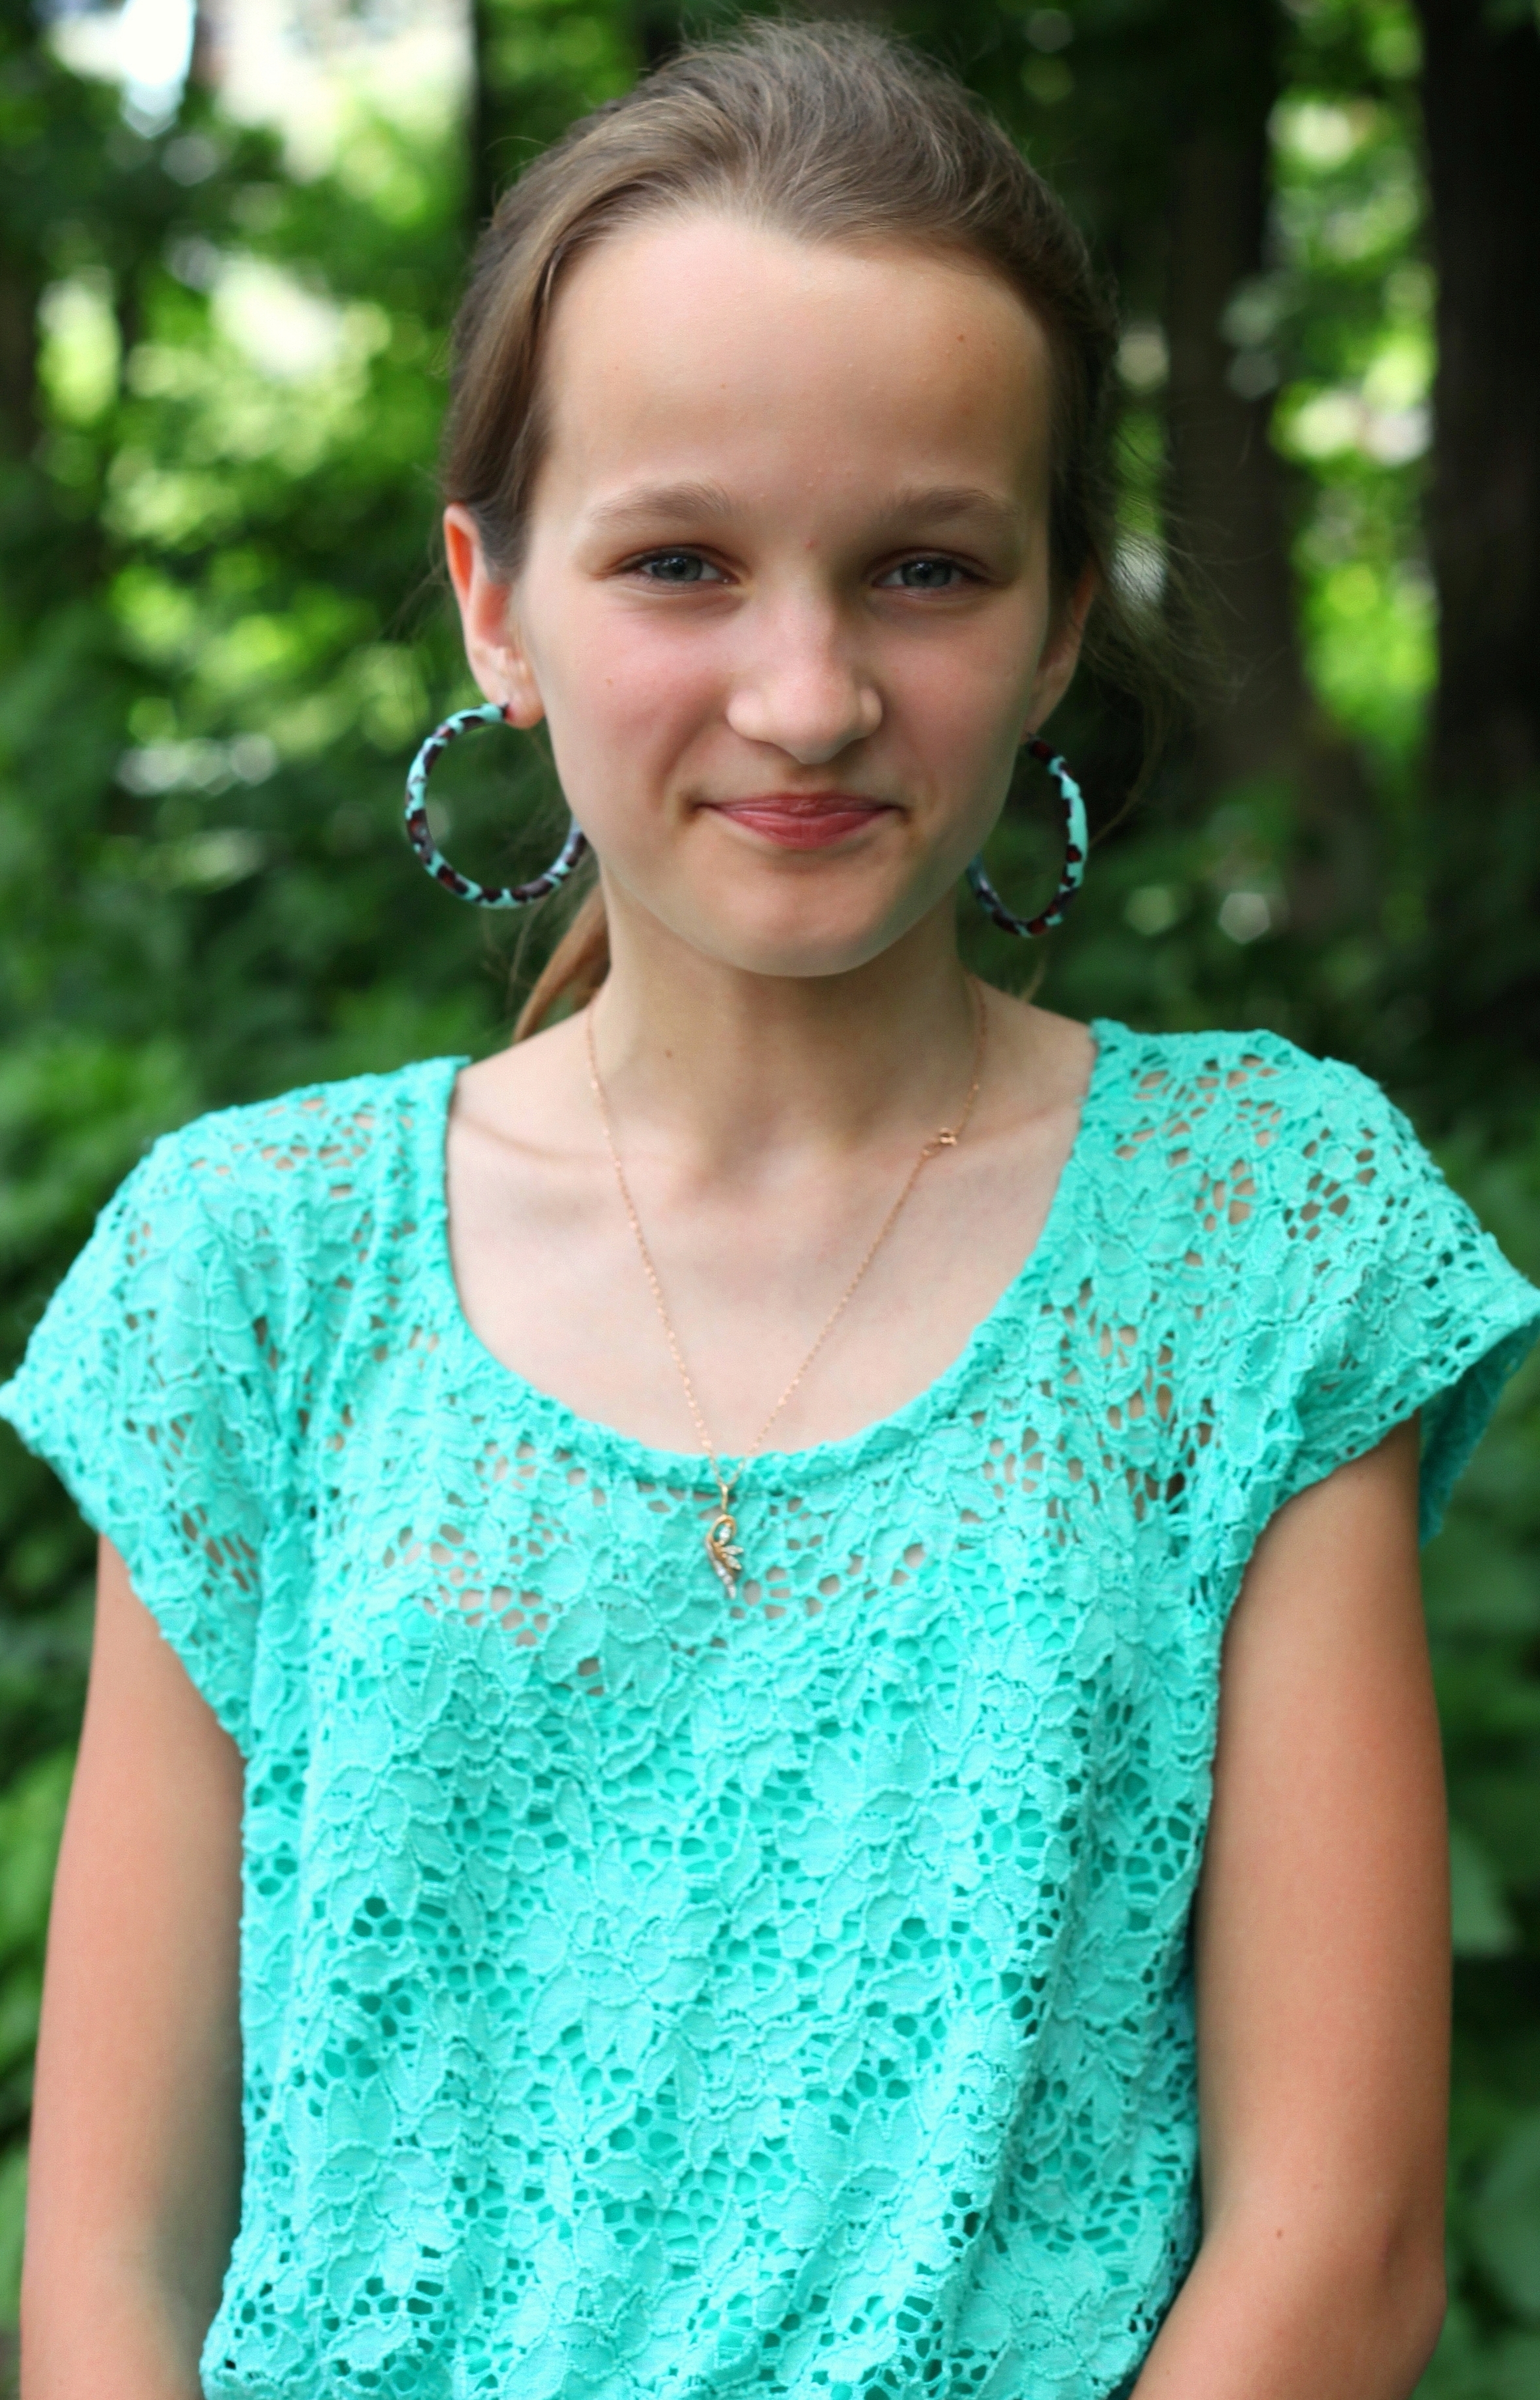 an absolutely beautiful smiling Catholic girl with huge earrings, photographed in June 2013, portrait 19/27